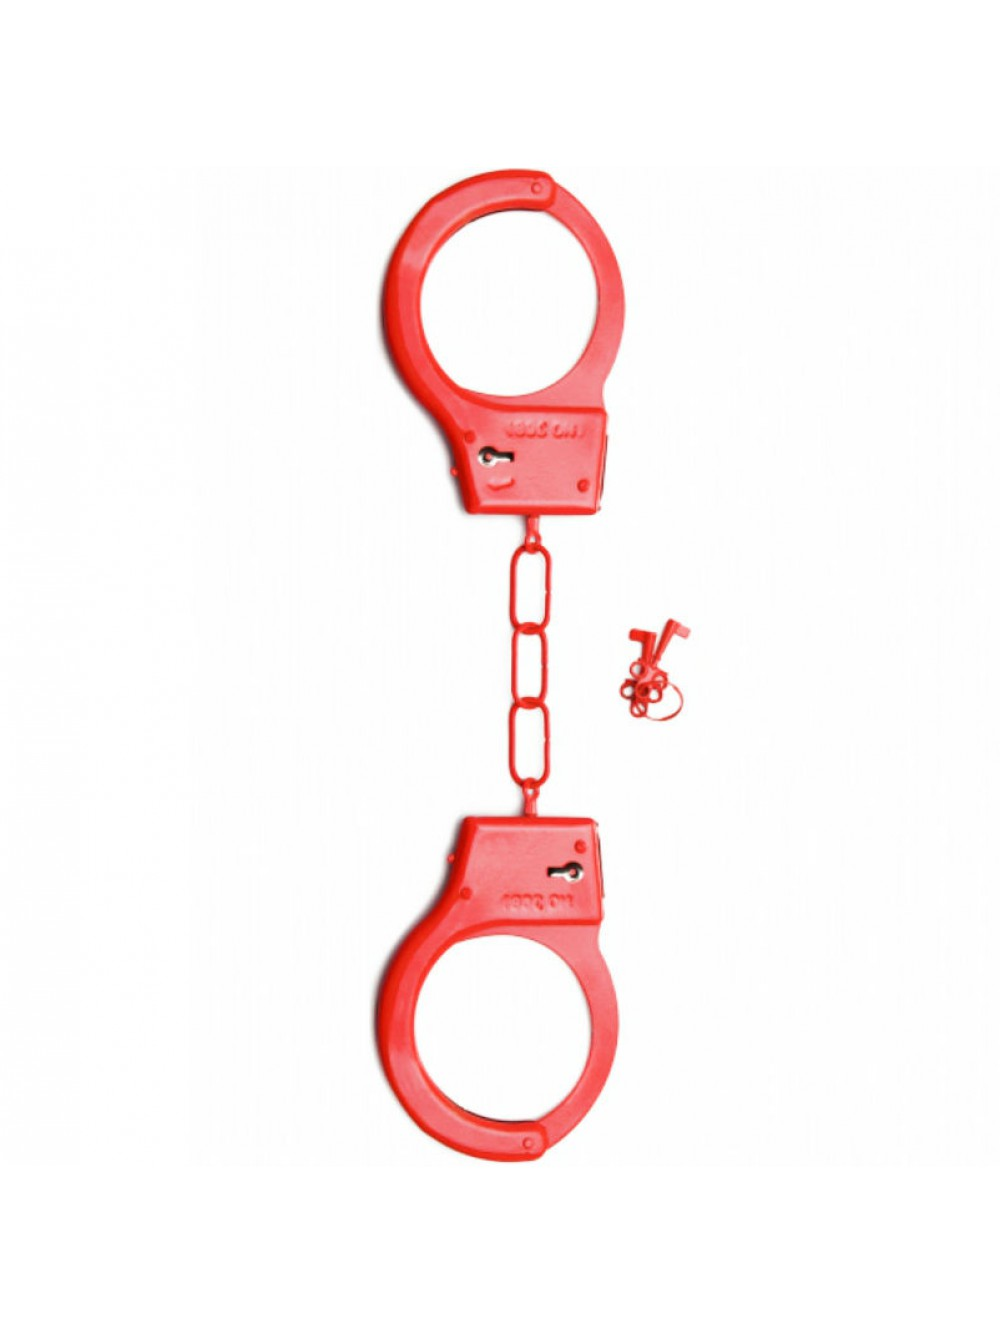 SHOTS METAL HANDCUFFS RED 8714273578105